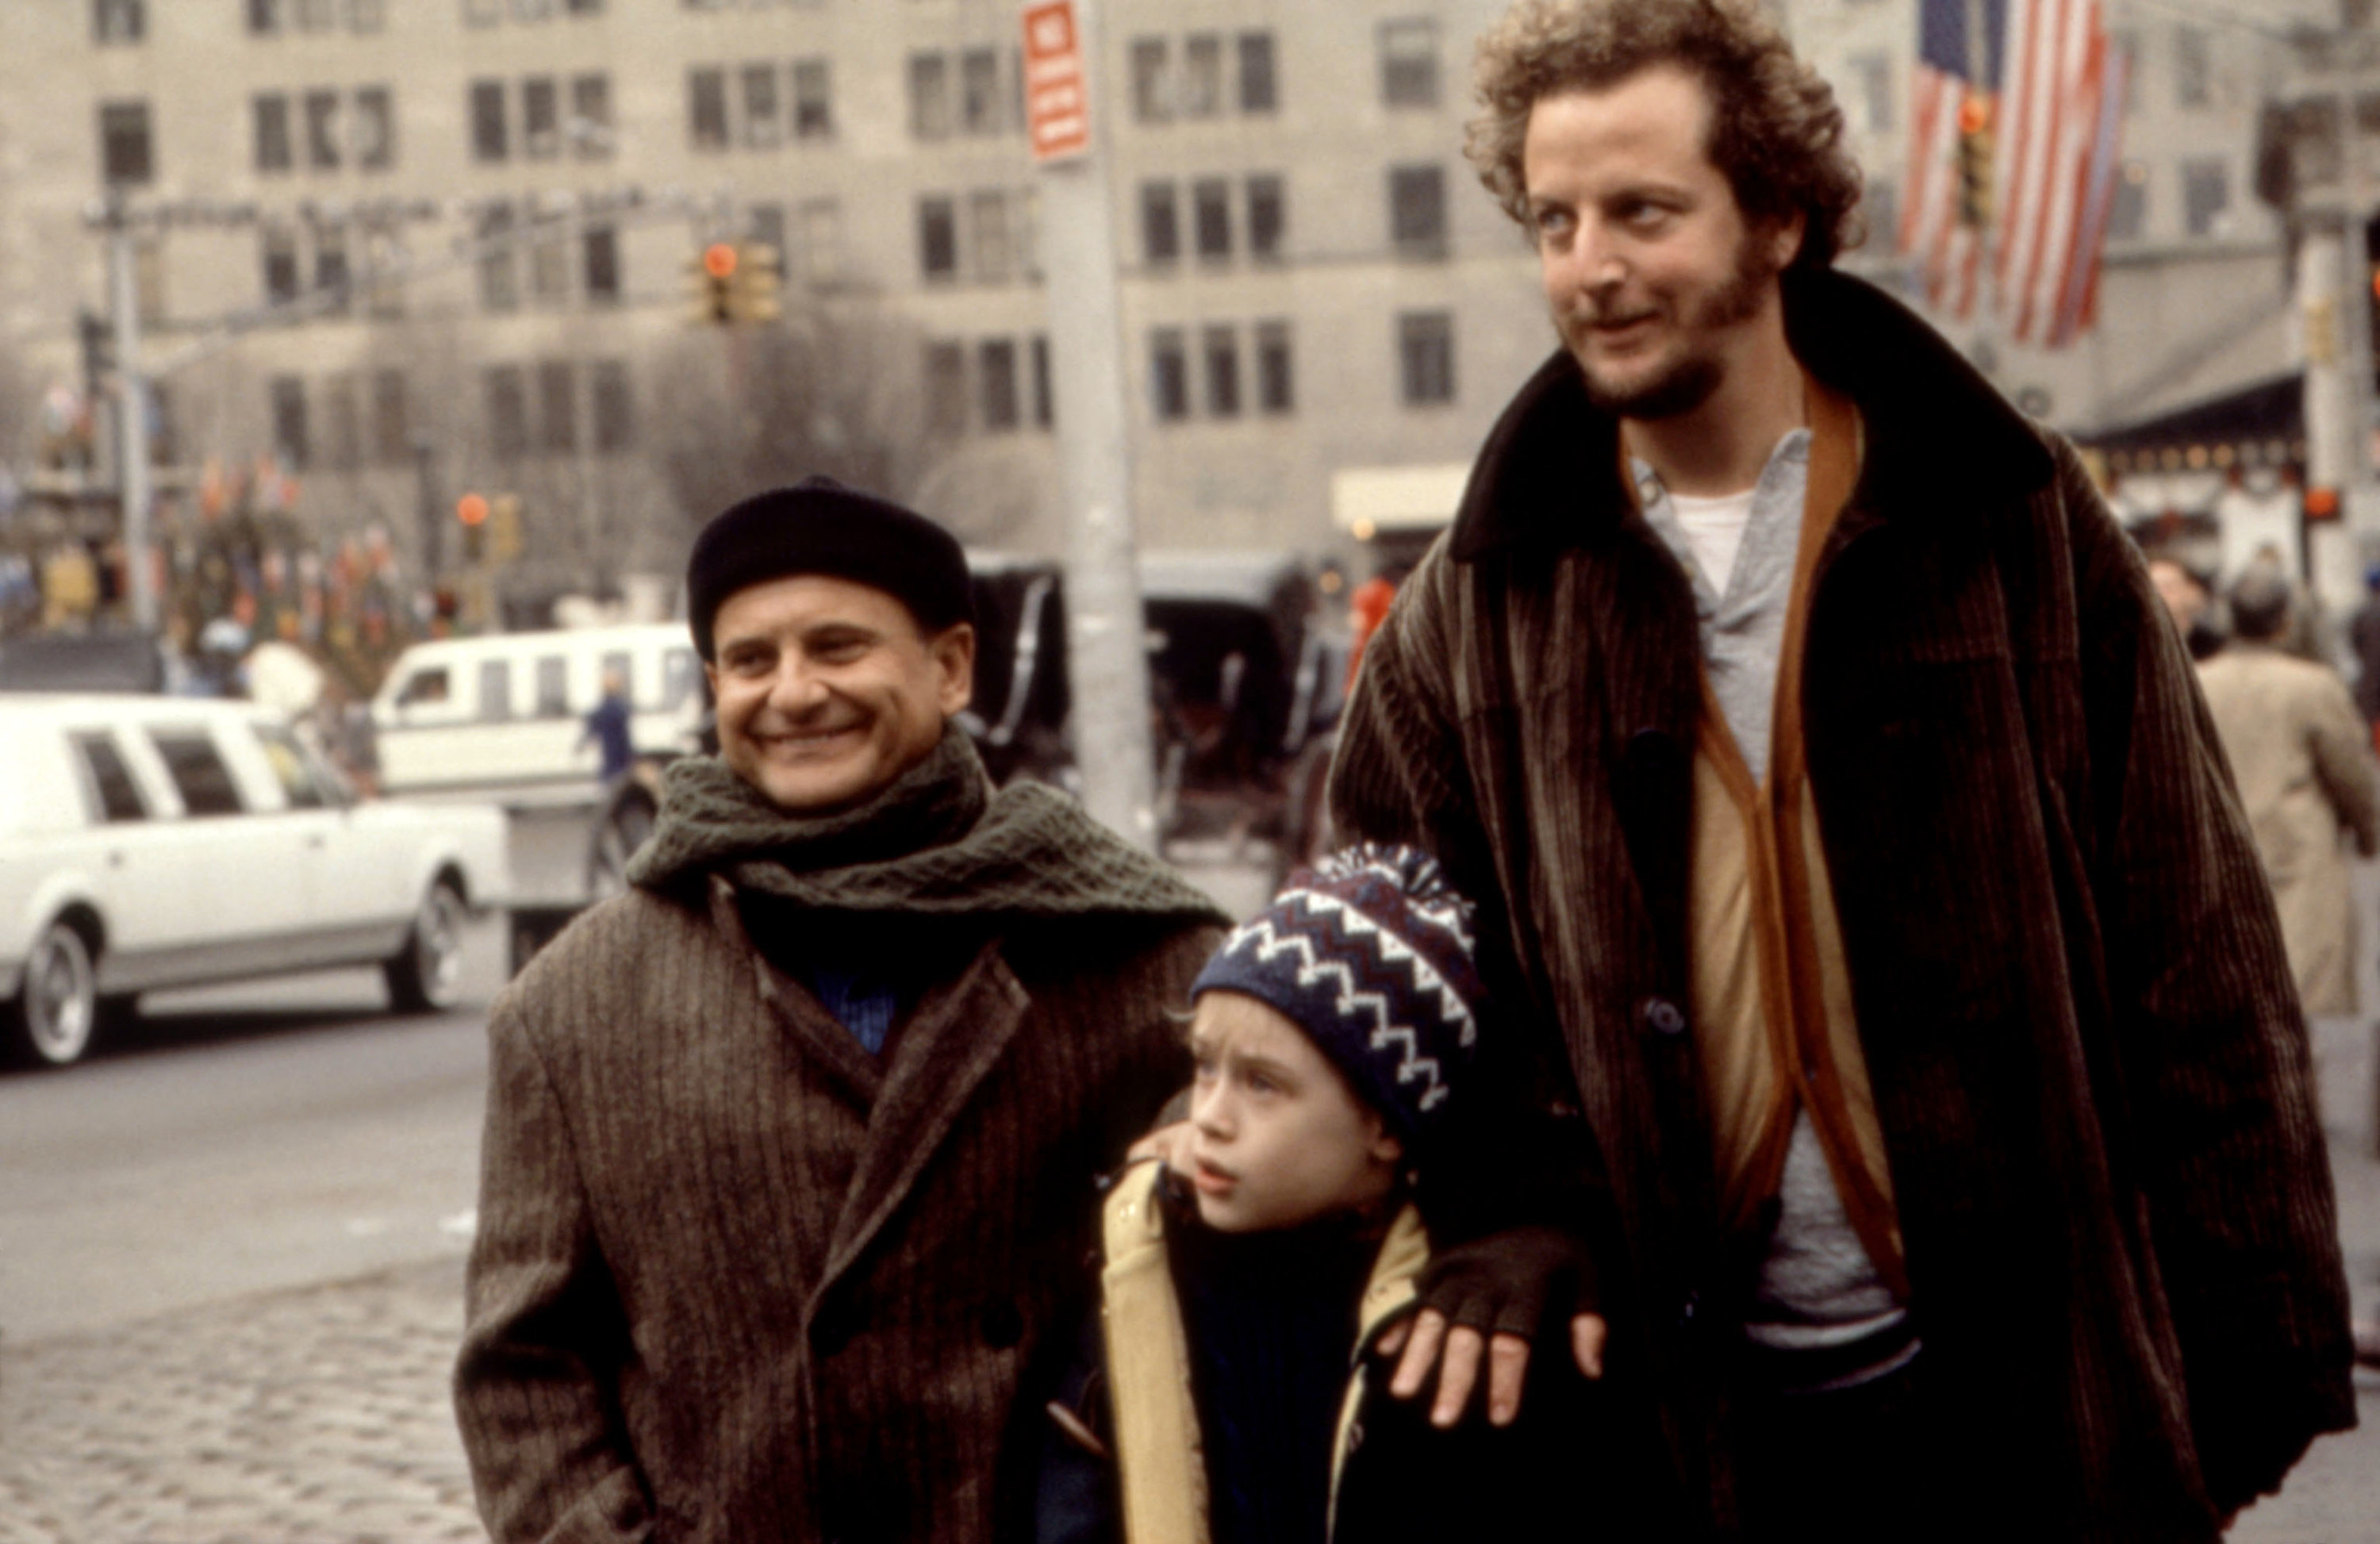 HOME ALONE 2: LOST IN NEW YORK, Joe Pesci, Macaulay Culkin, Daniel Stern